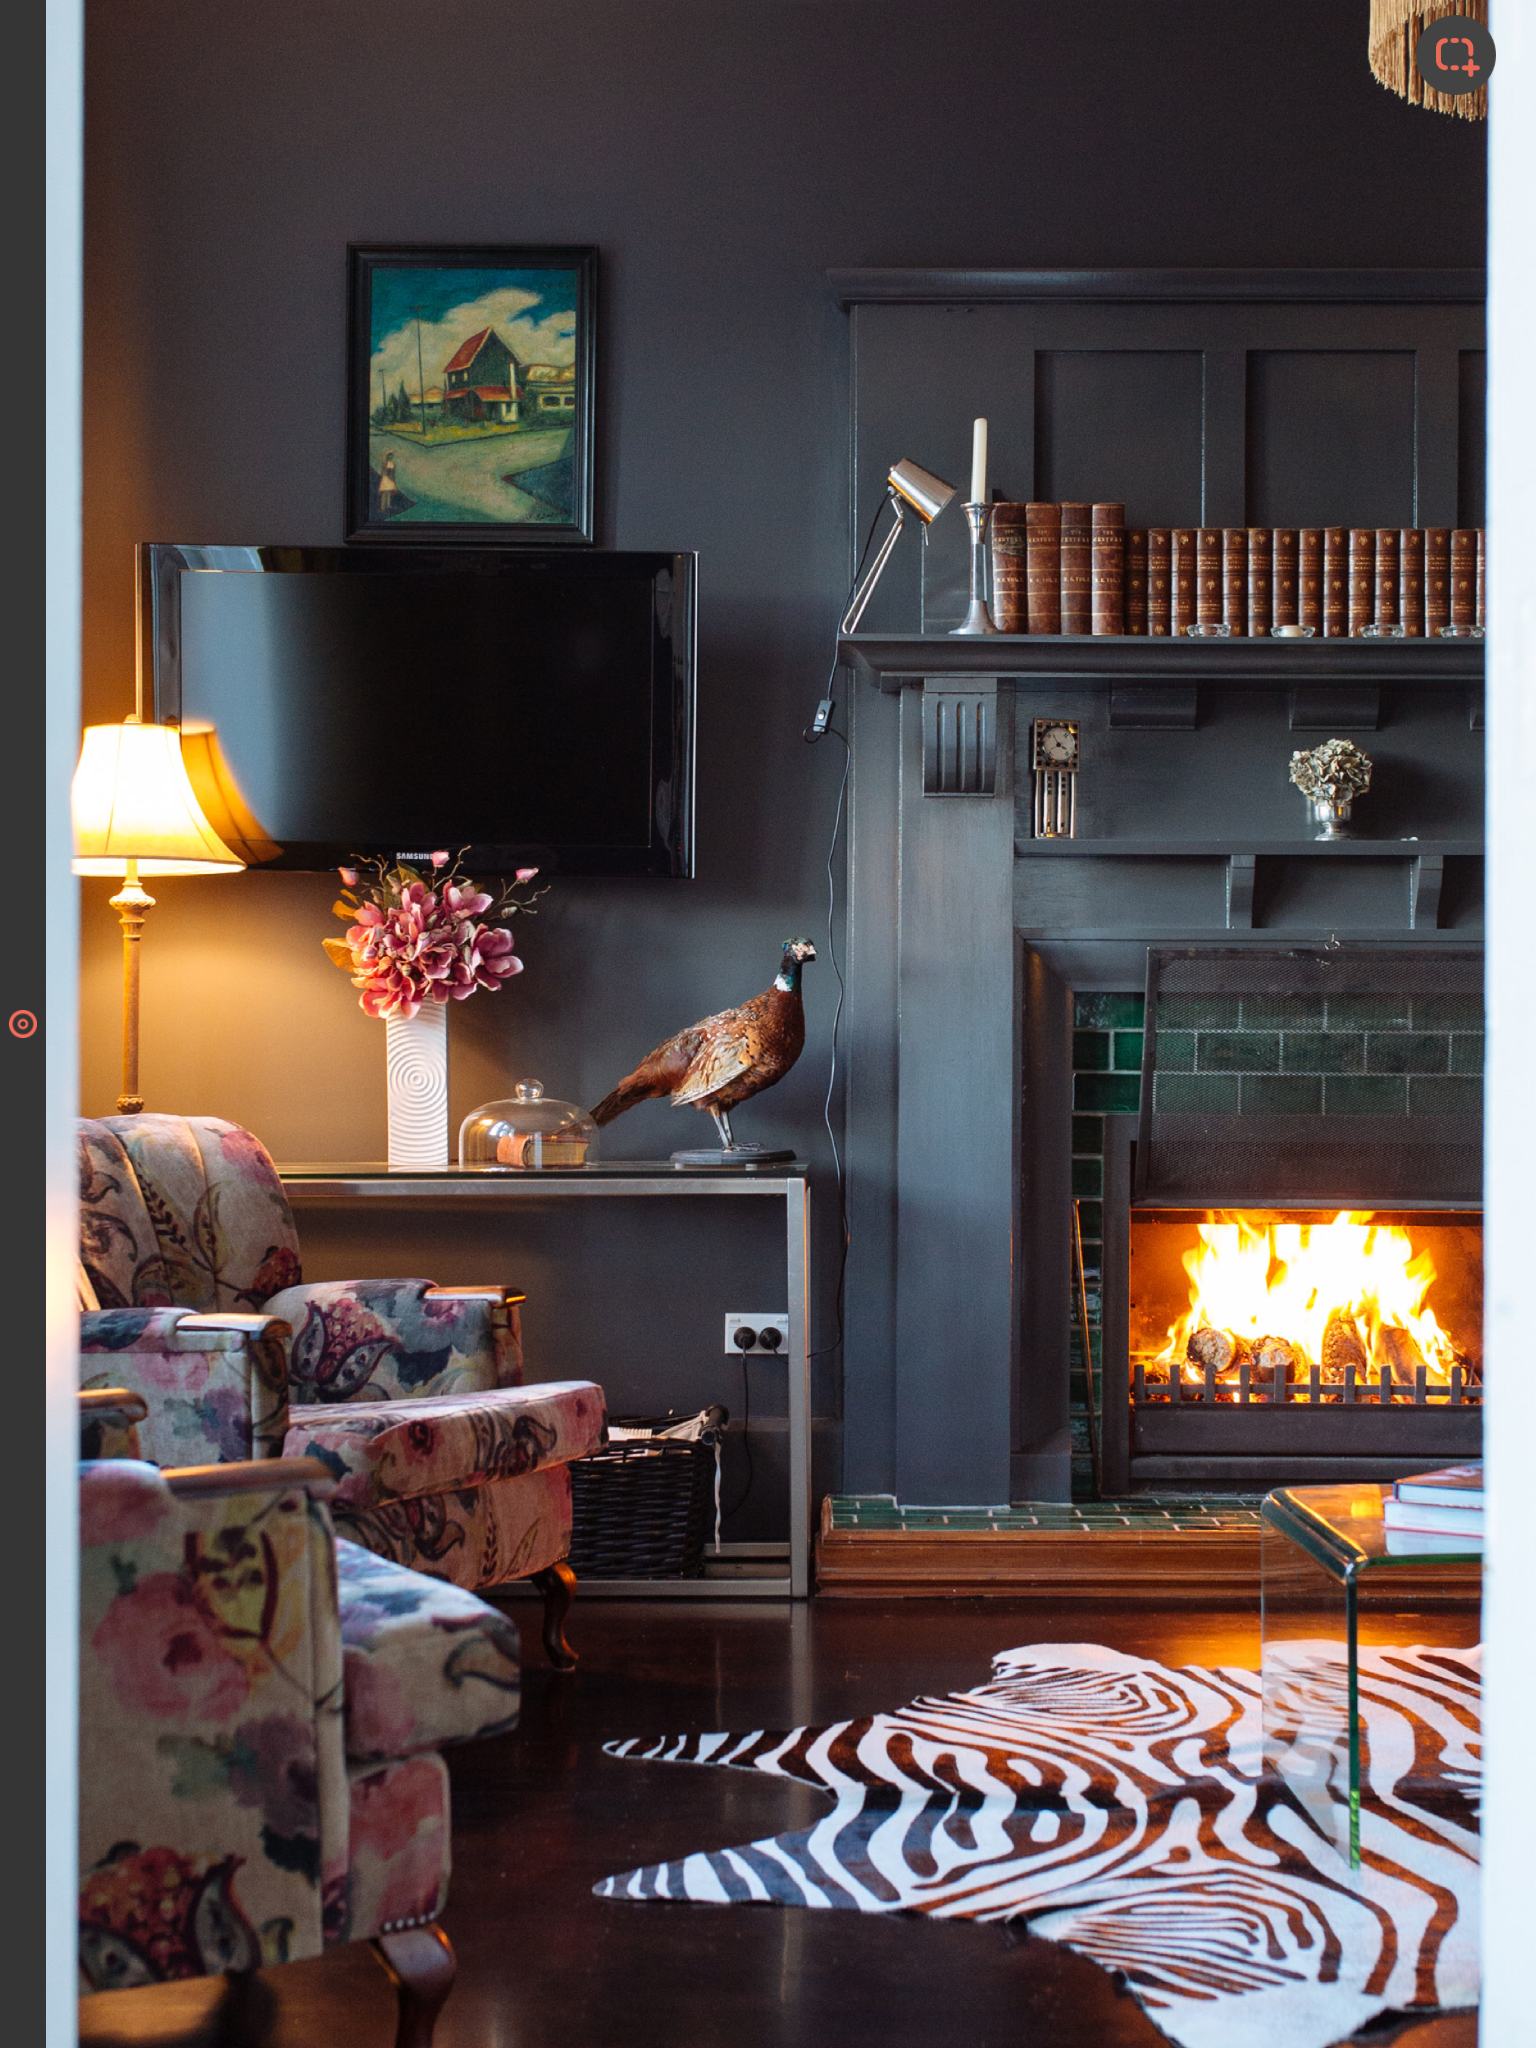 Wood Stove Living Room Design: Pin By Kathryn Allan On Living Room Ideas (With Images